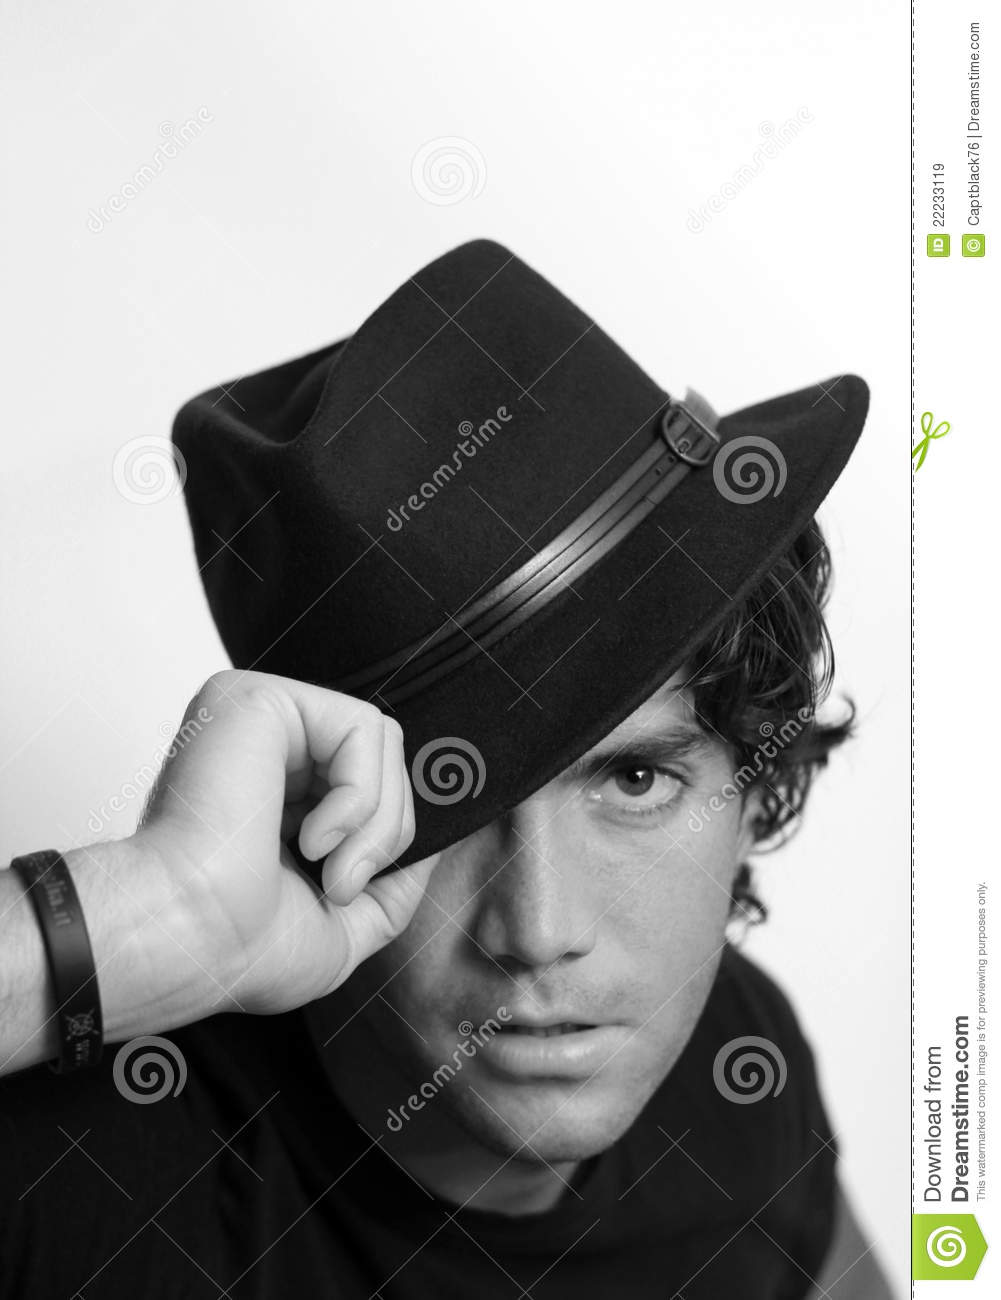 Cool Guy With Hat Stock Photo 22233119 - Megapixl 3668683ef42